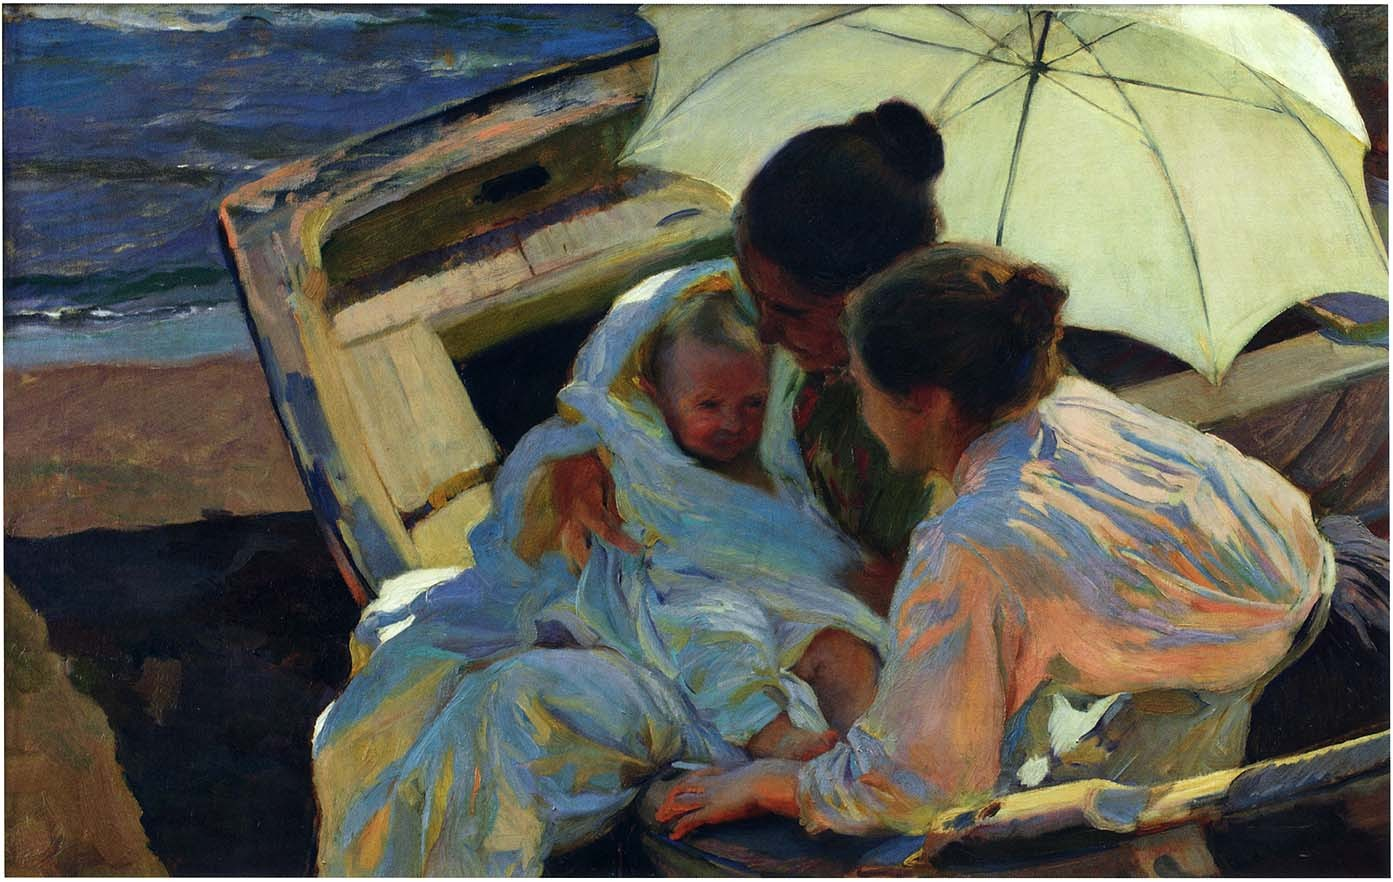 After the Bath, Joaquin Sorolla y Bastida - 1902